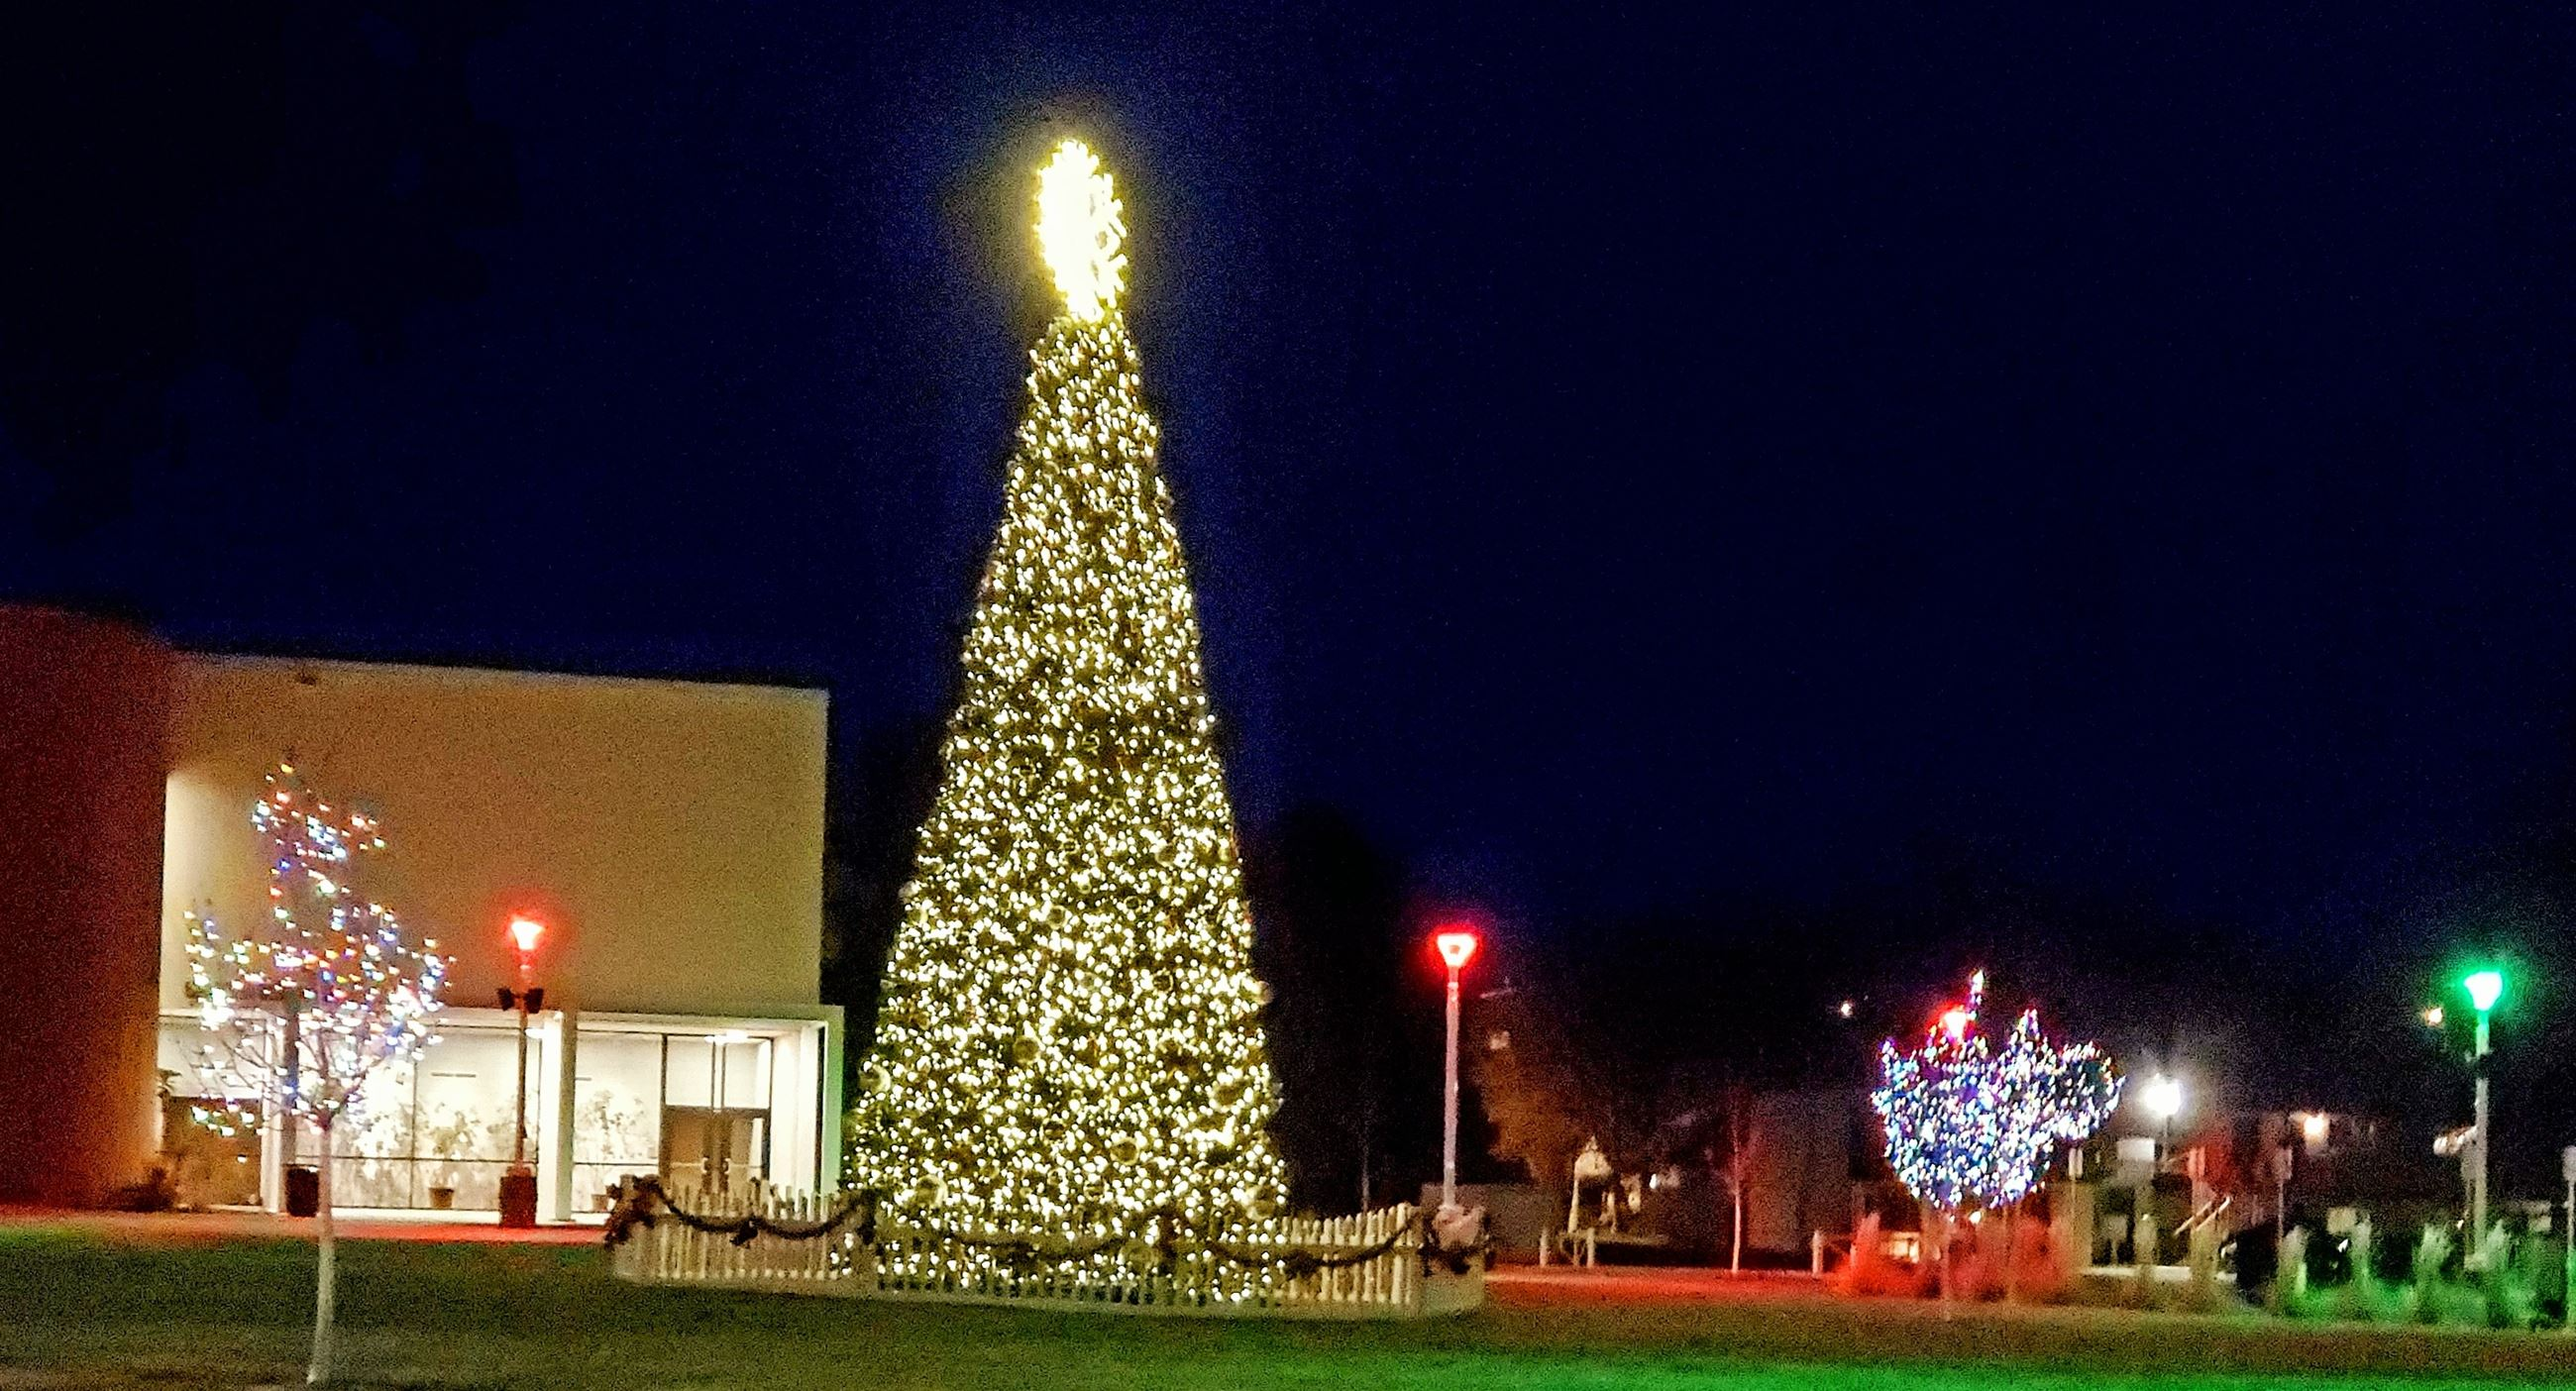 civic center Christmas